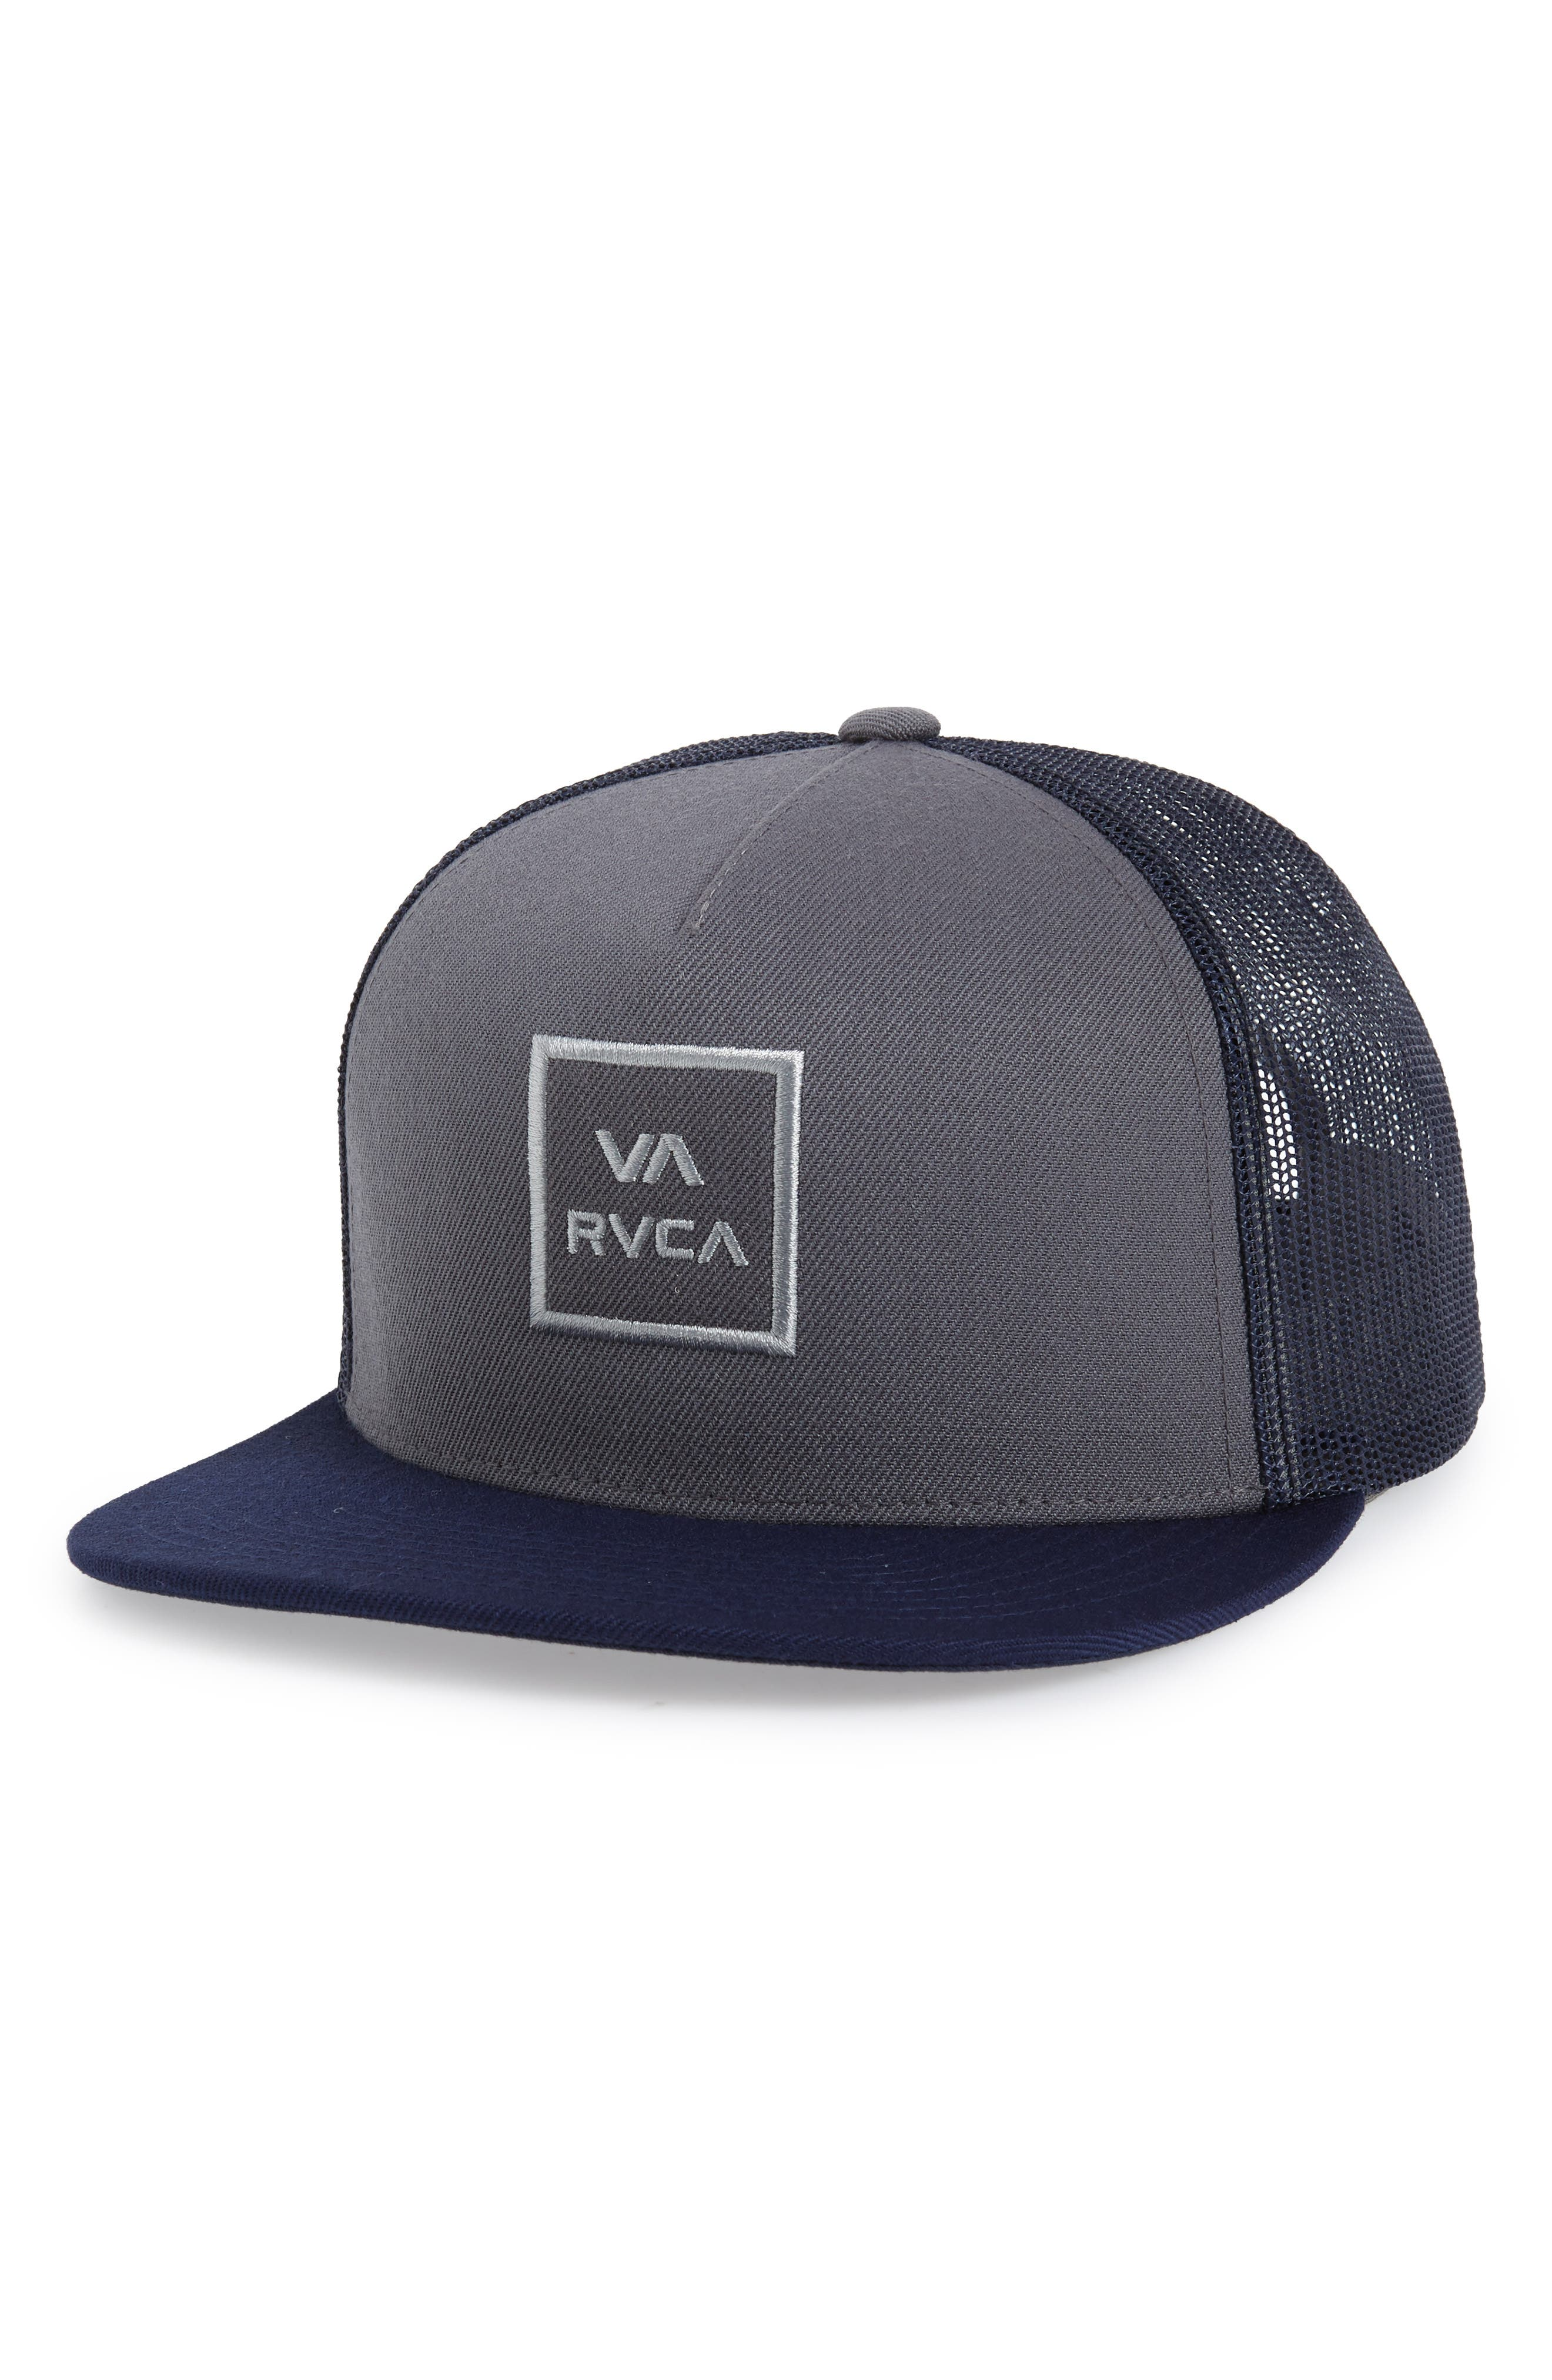 VA All the Way Trucker Hat,                             Main thumbnail 1, color,                             BLUE/ GREY